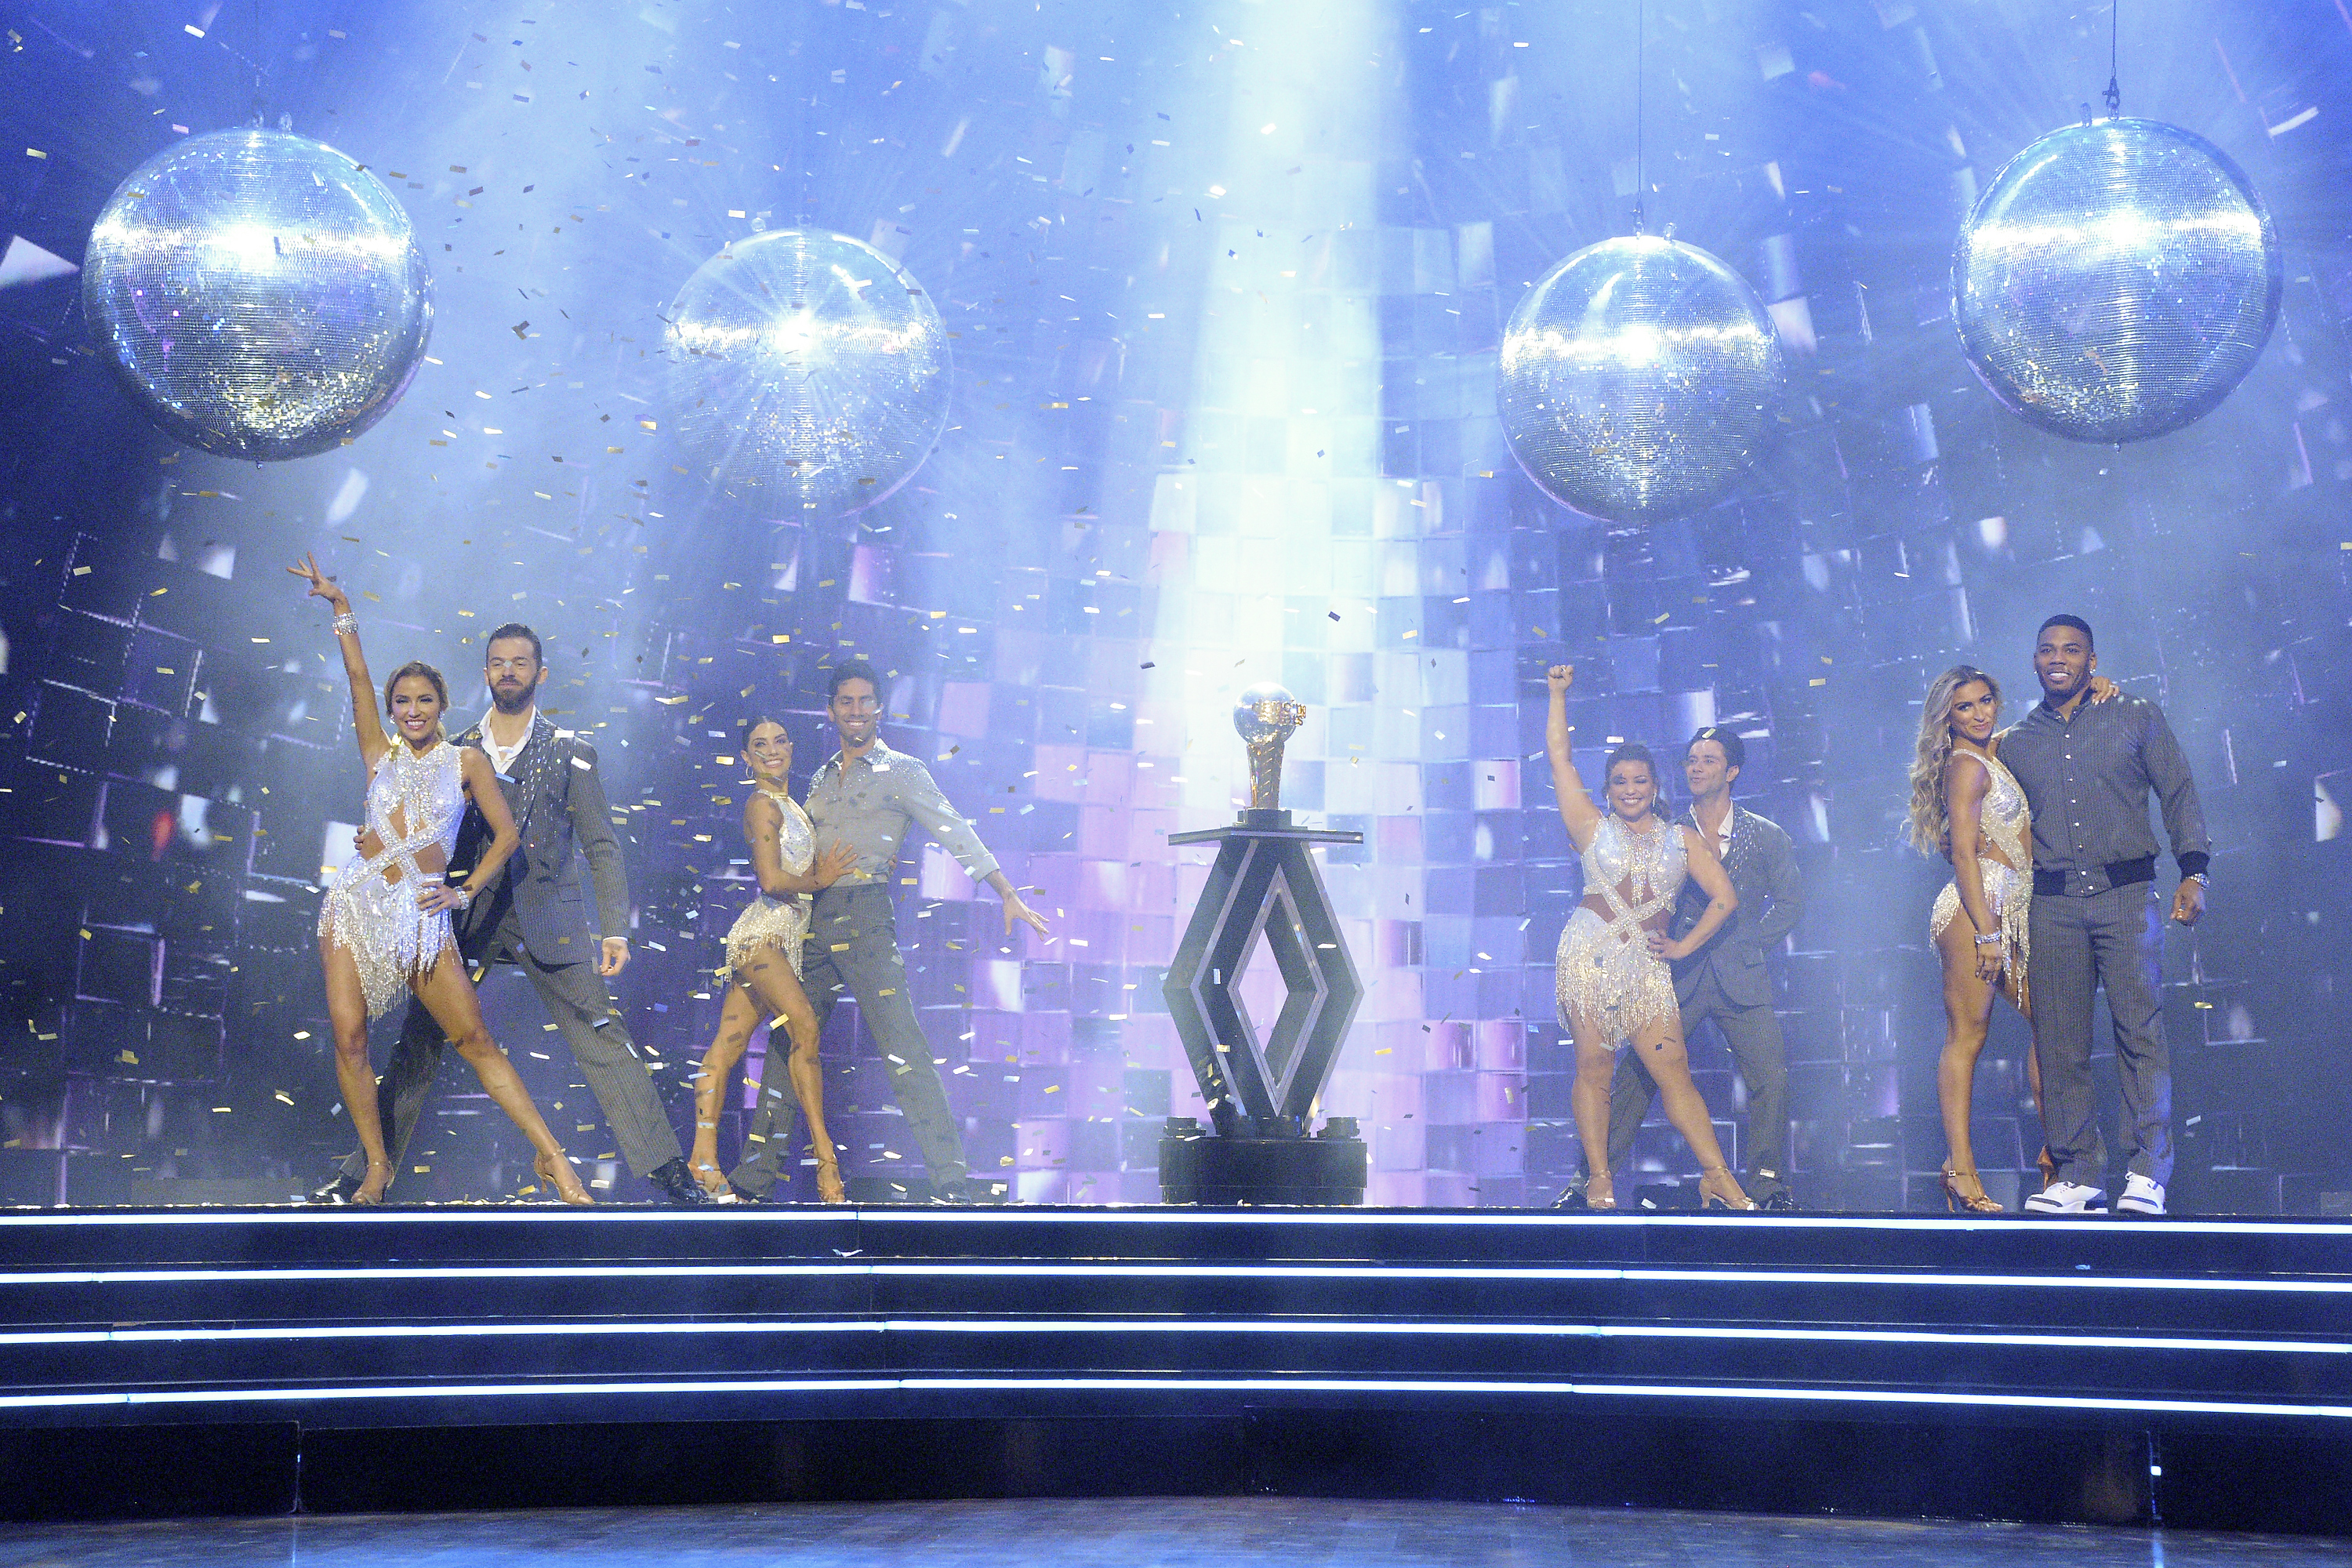 'Dancing with the Stars' crowns a new champ